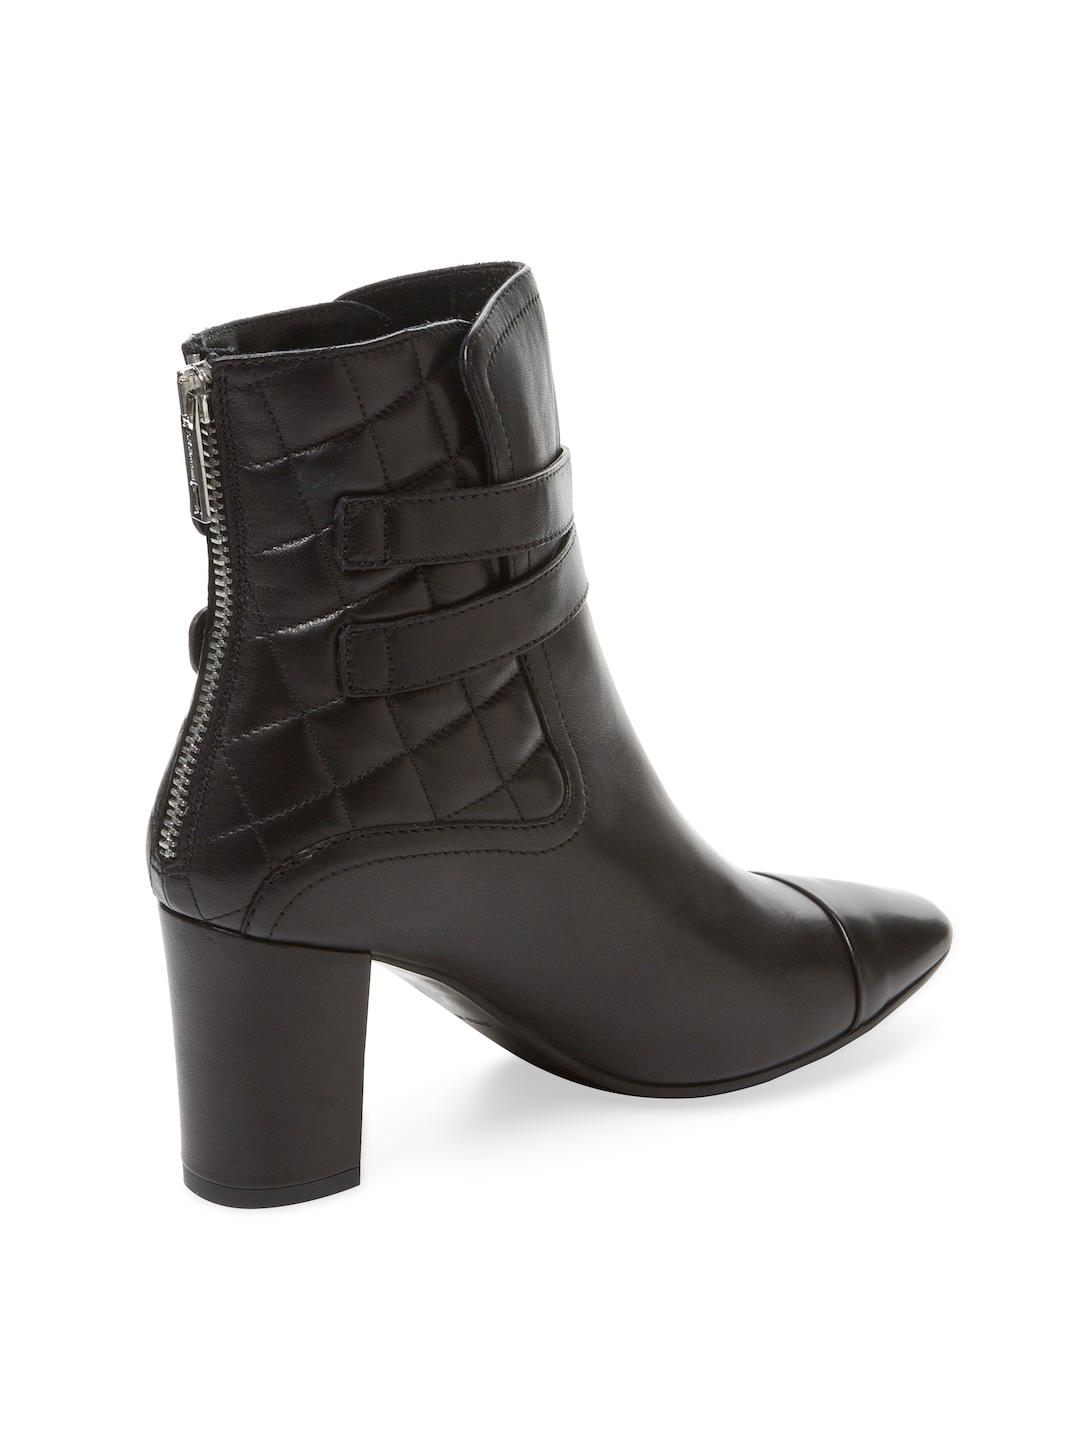 L.K.Bennett Leather Charlize Double Buckle Boot in Black